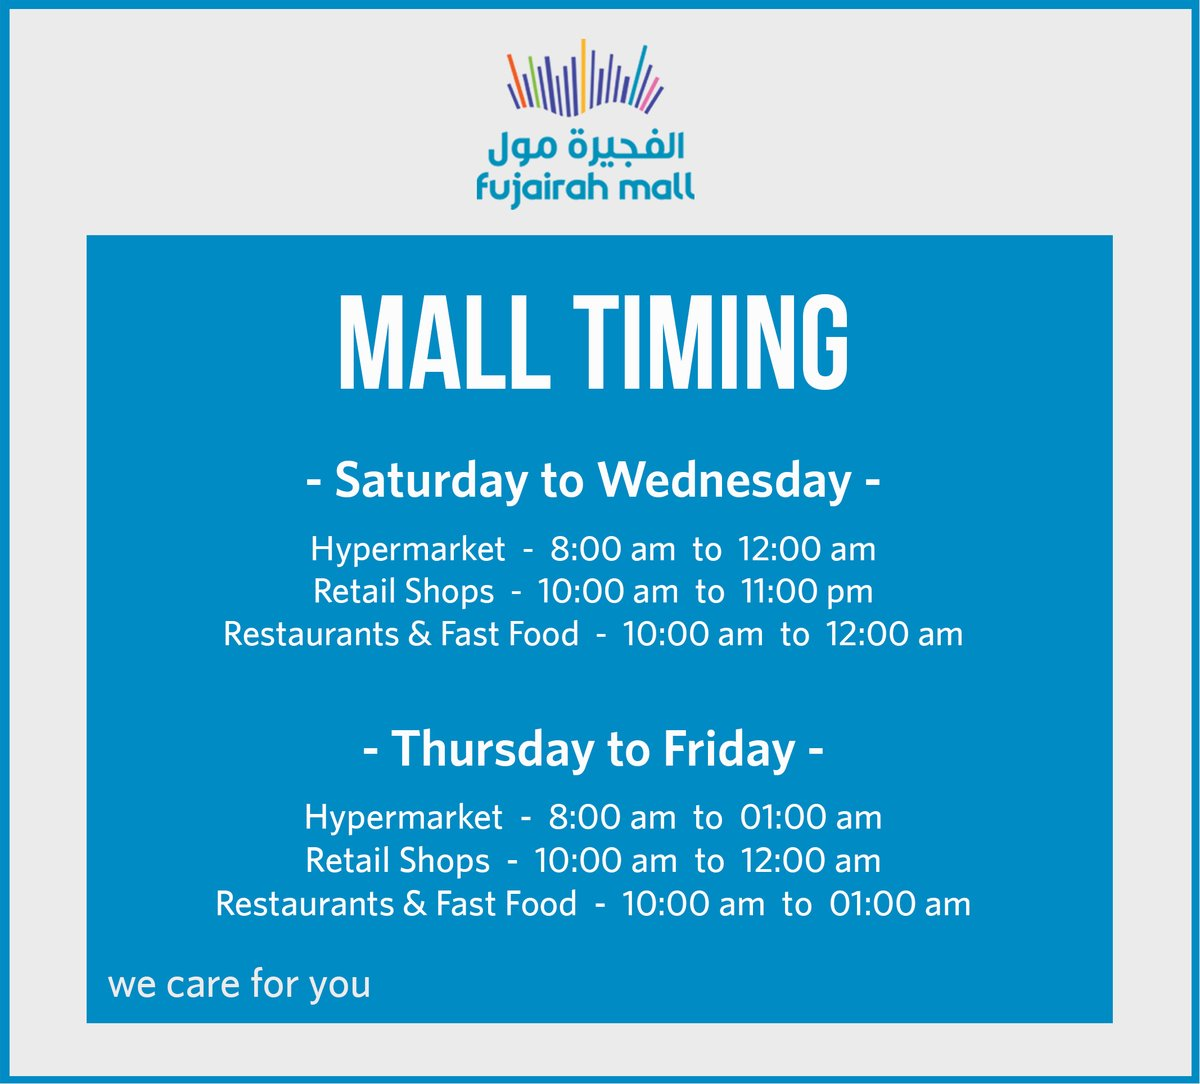 New Mall Timing https://t.co/oQtEy3KPkQ